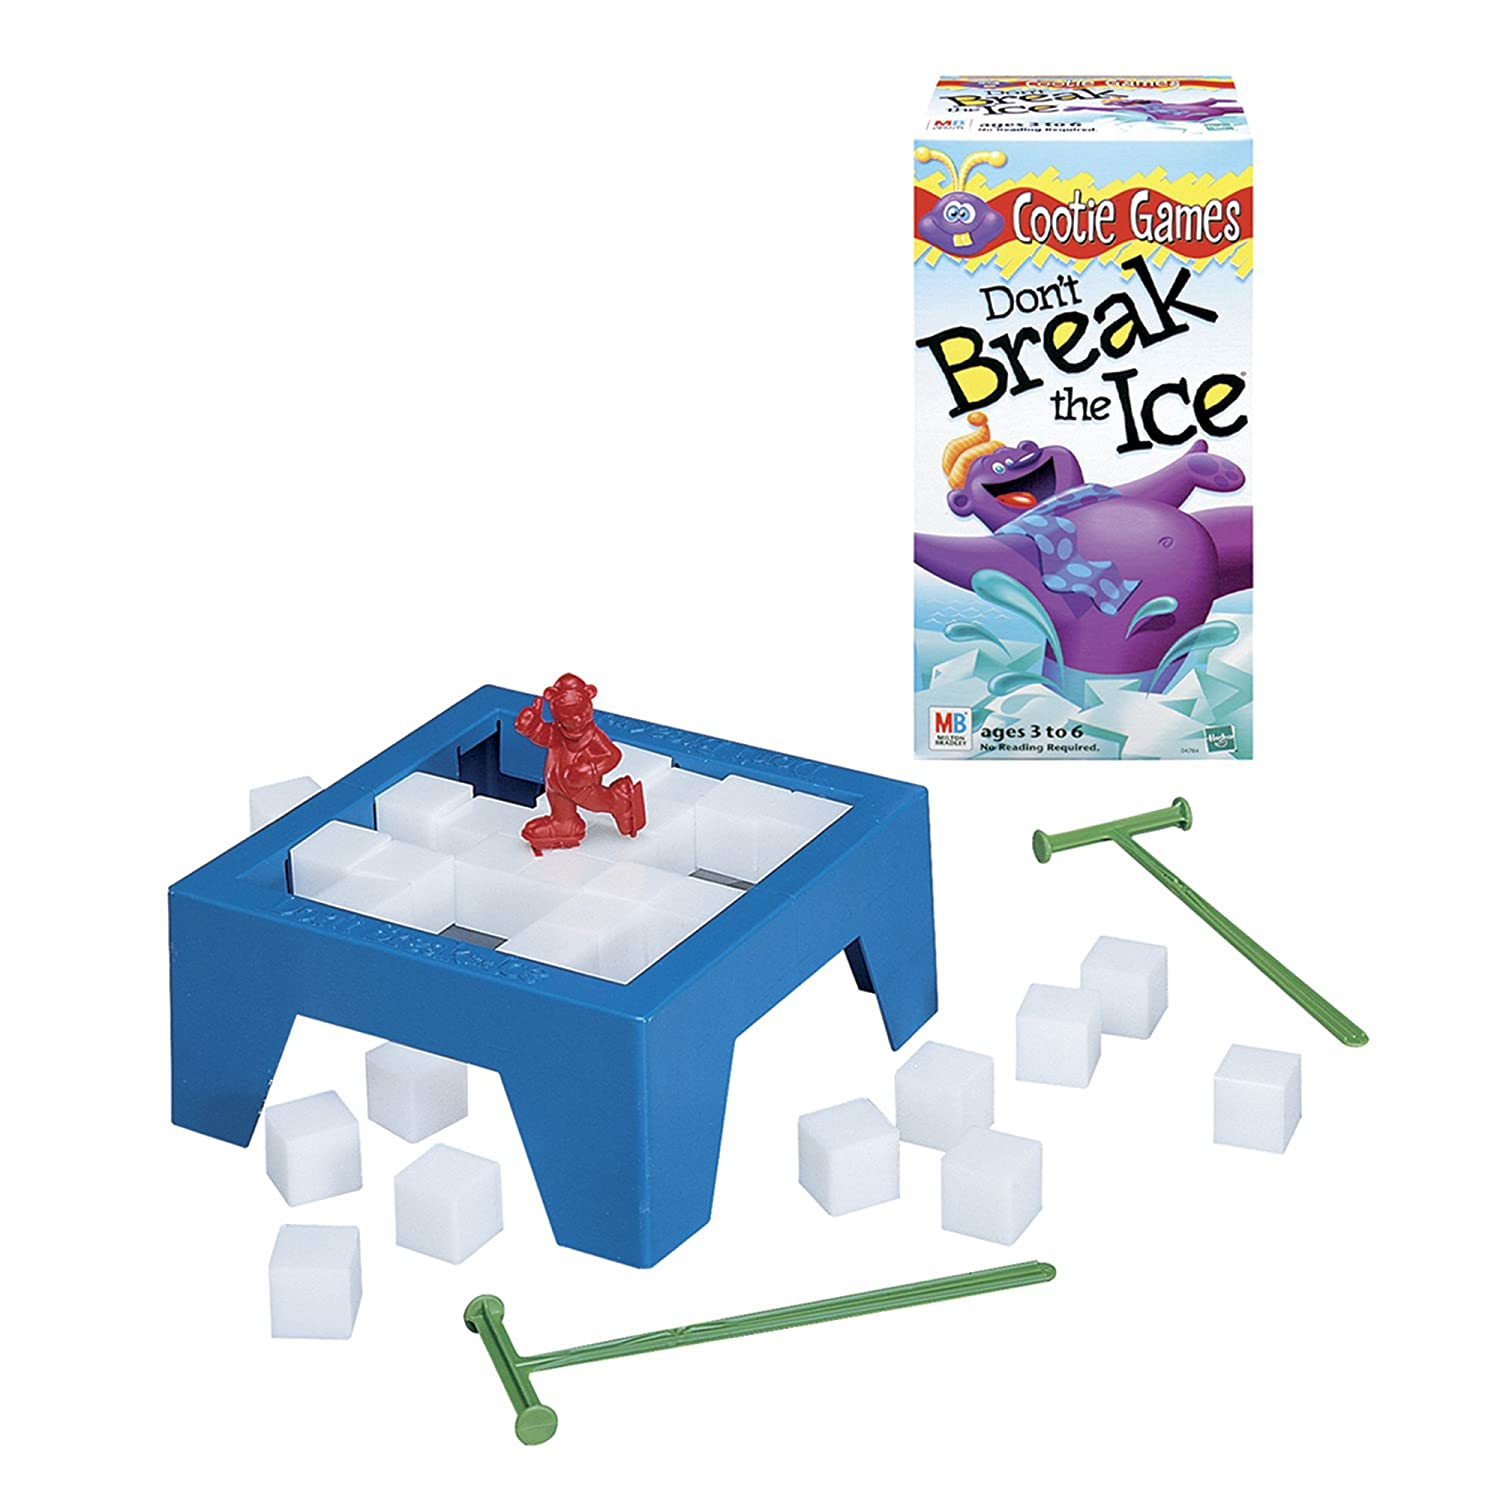 Oh man, I used to play a similar game back when I was a kid called Don't Break The Ice. Think my parents still have it laying around somewhere.